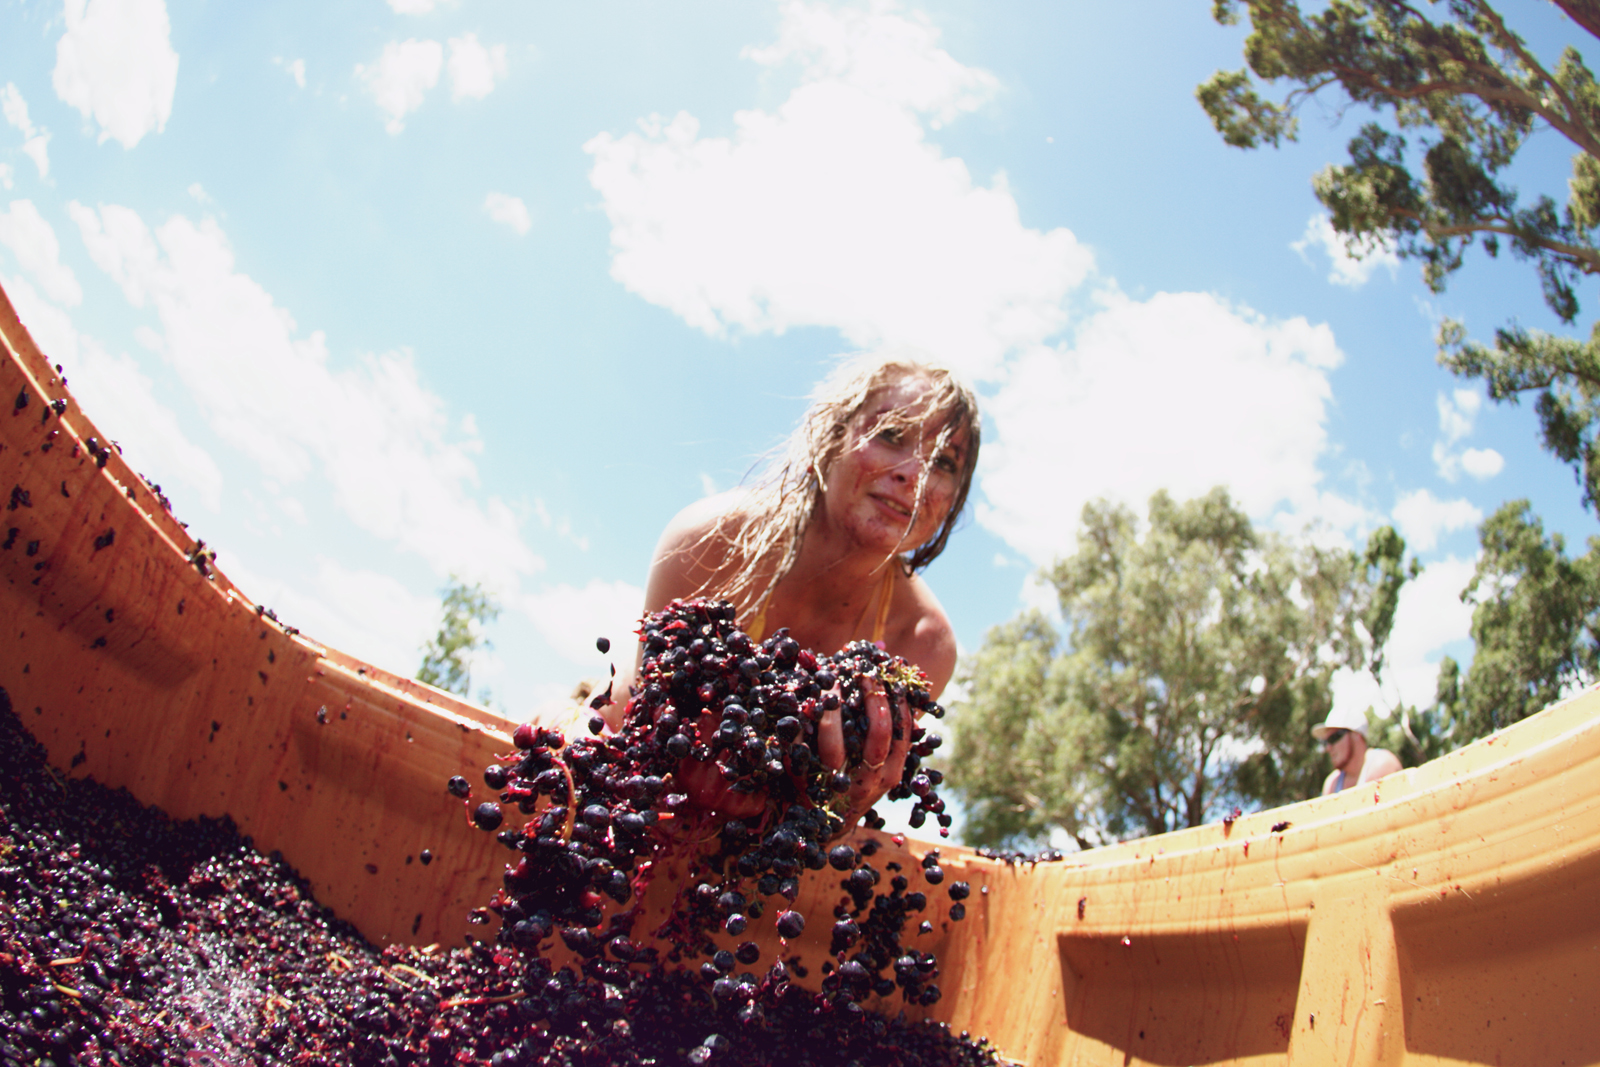 grape throwing festival surely to be the rarest of travel